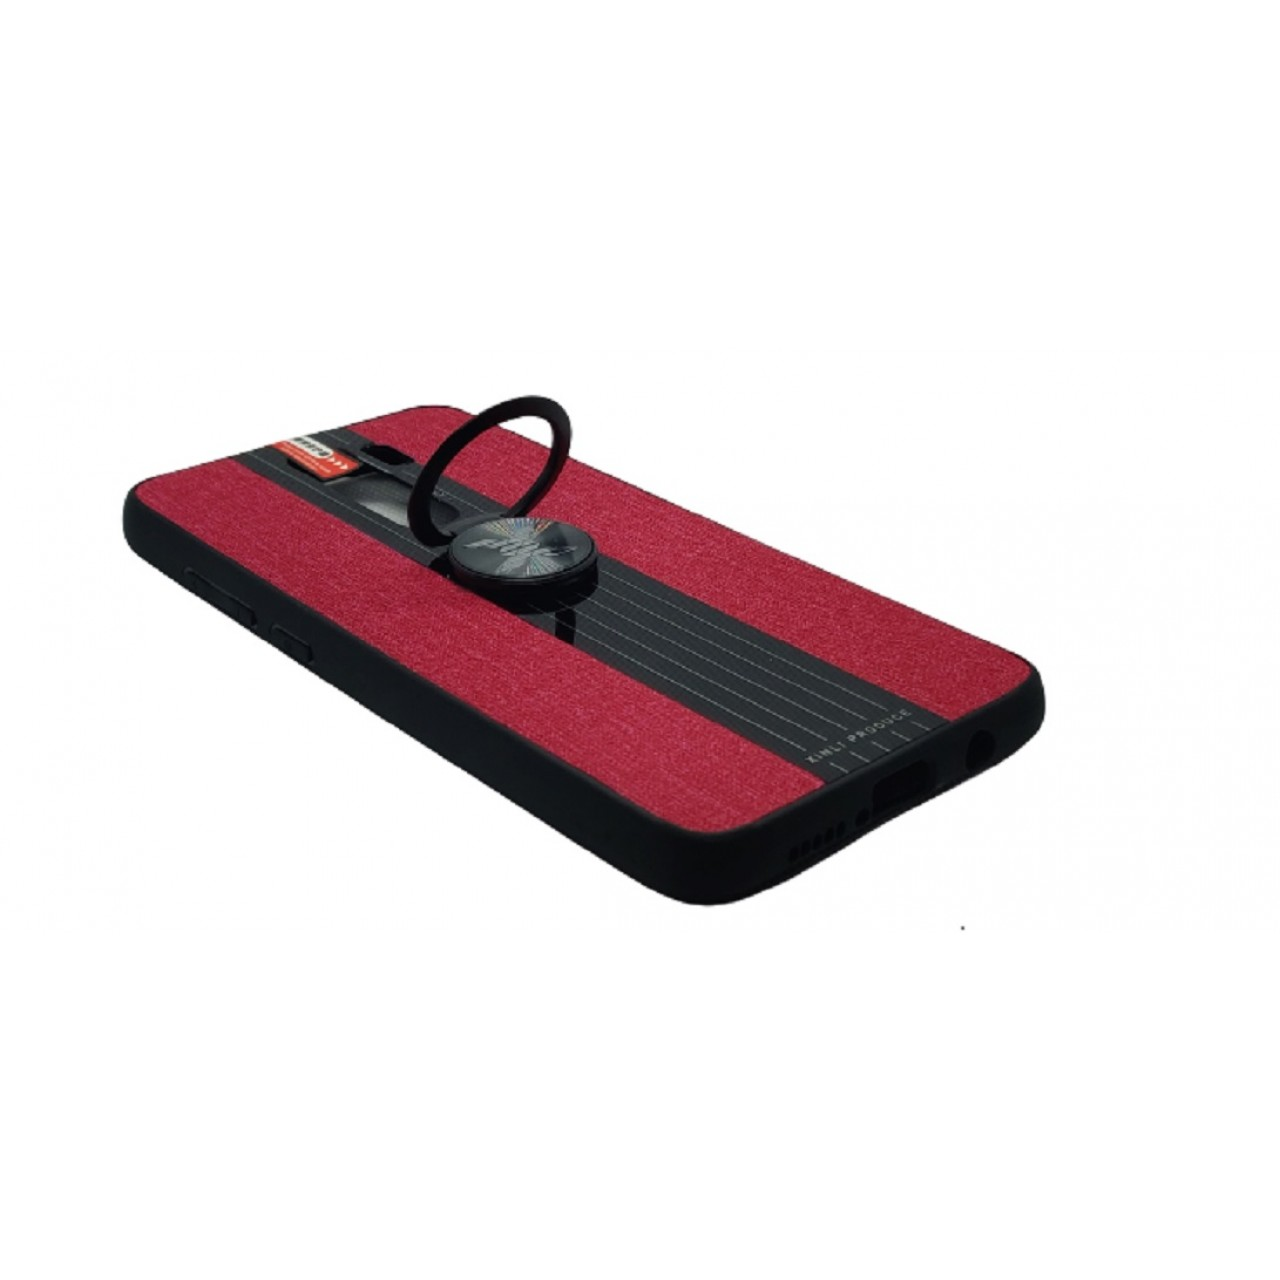 Back Case Cloth Pattern with ring for Redmi note 8 PRO Red - Θήκη προστασίας με δαχτυλίδι στην πλάτη Κόκκινη - OEM